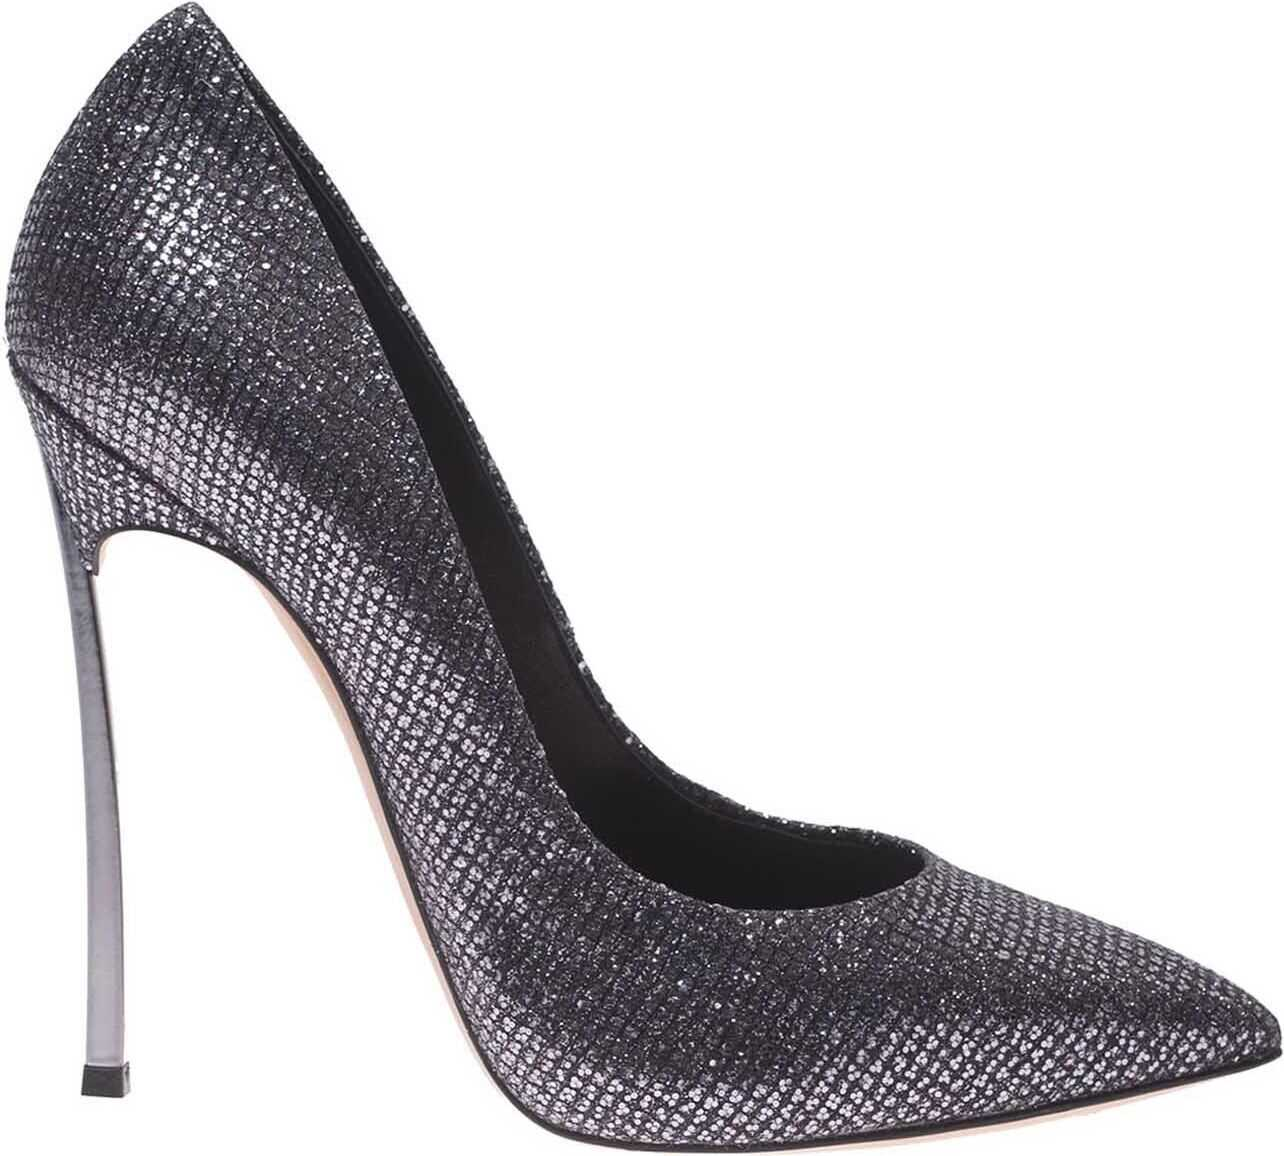 Casadei Pumps In Silver Gray With Blade Heel Silver